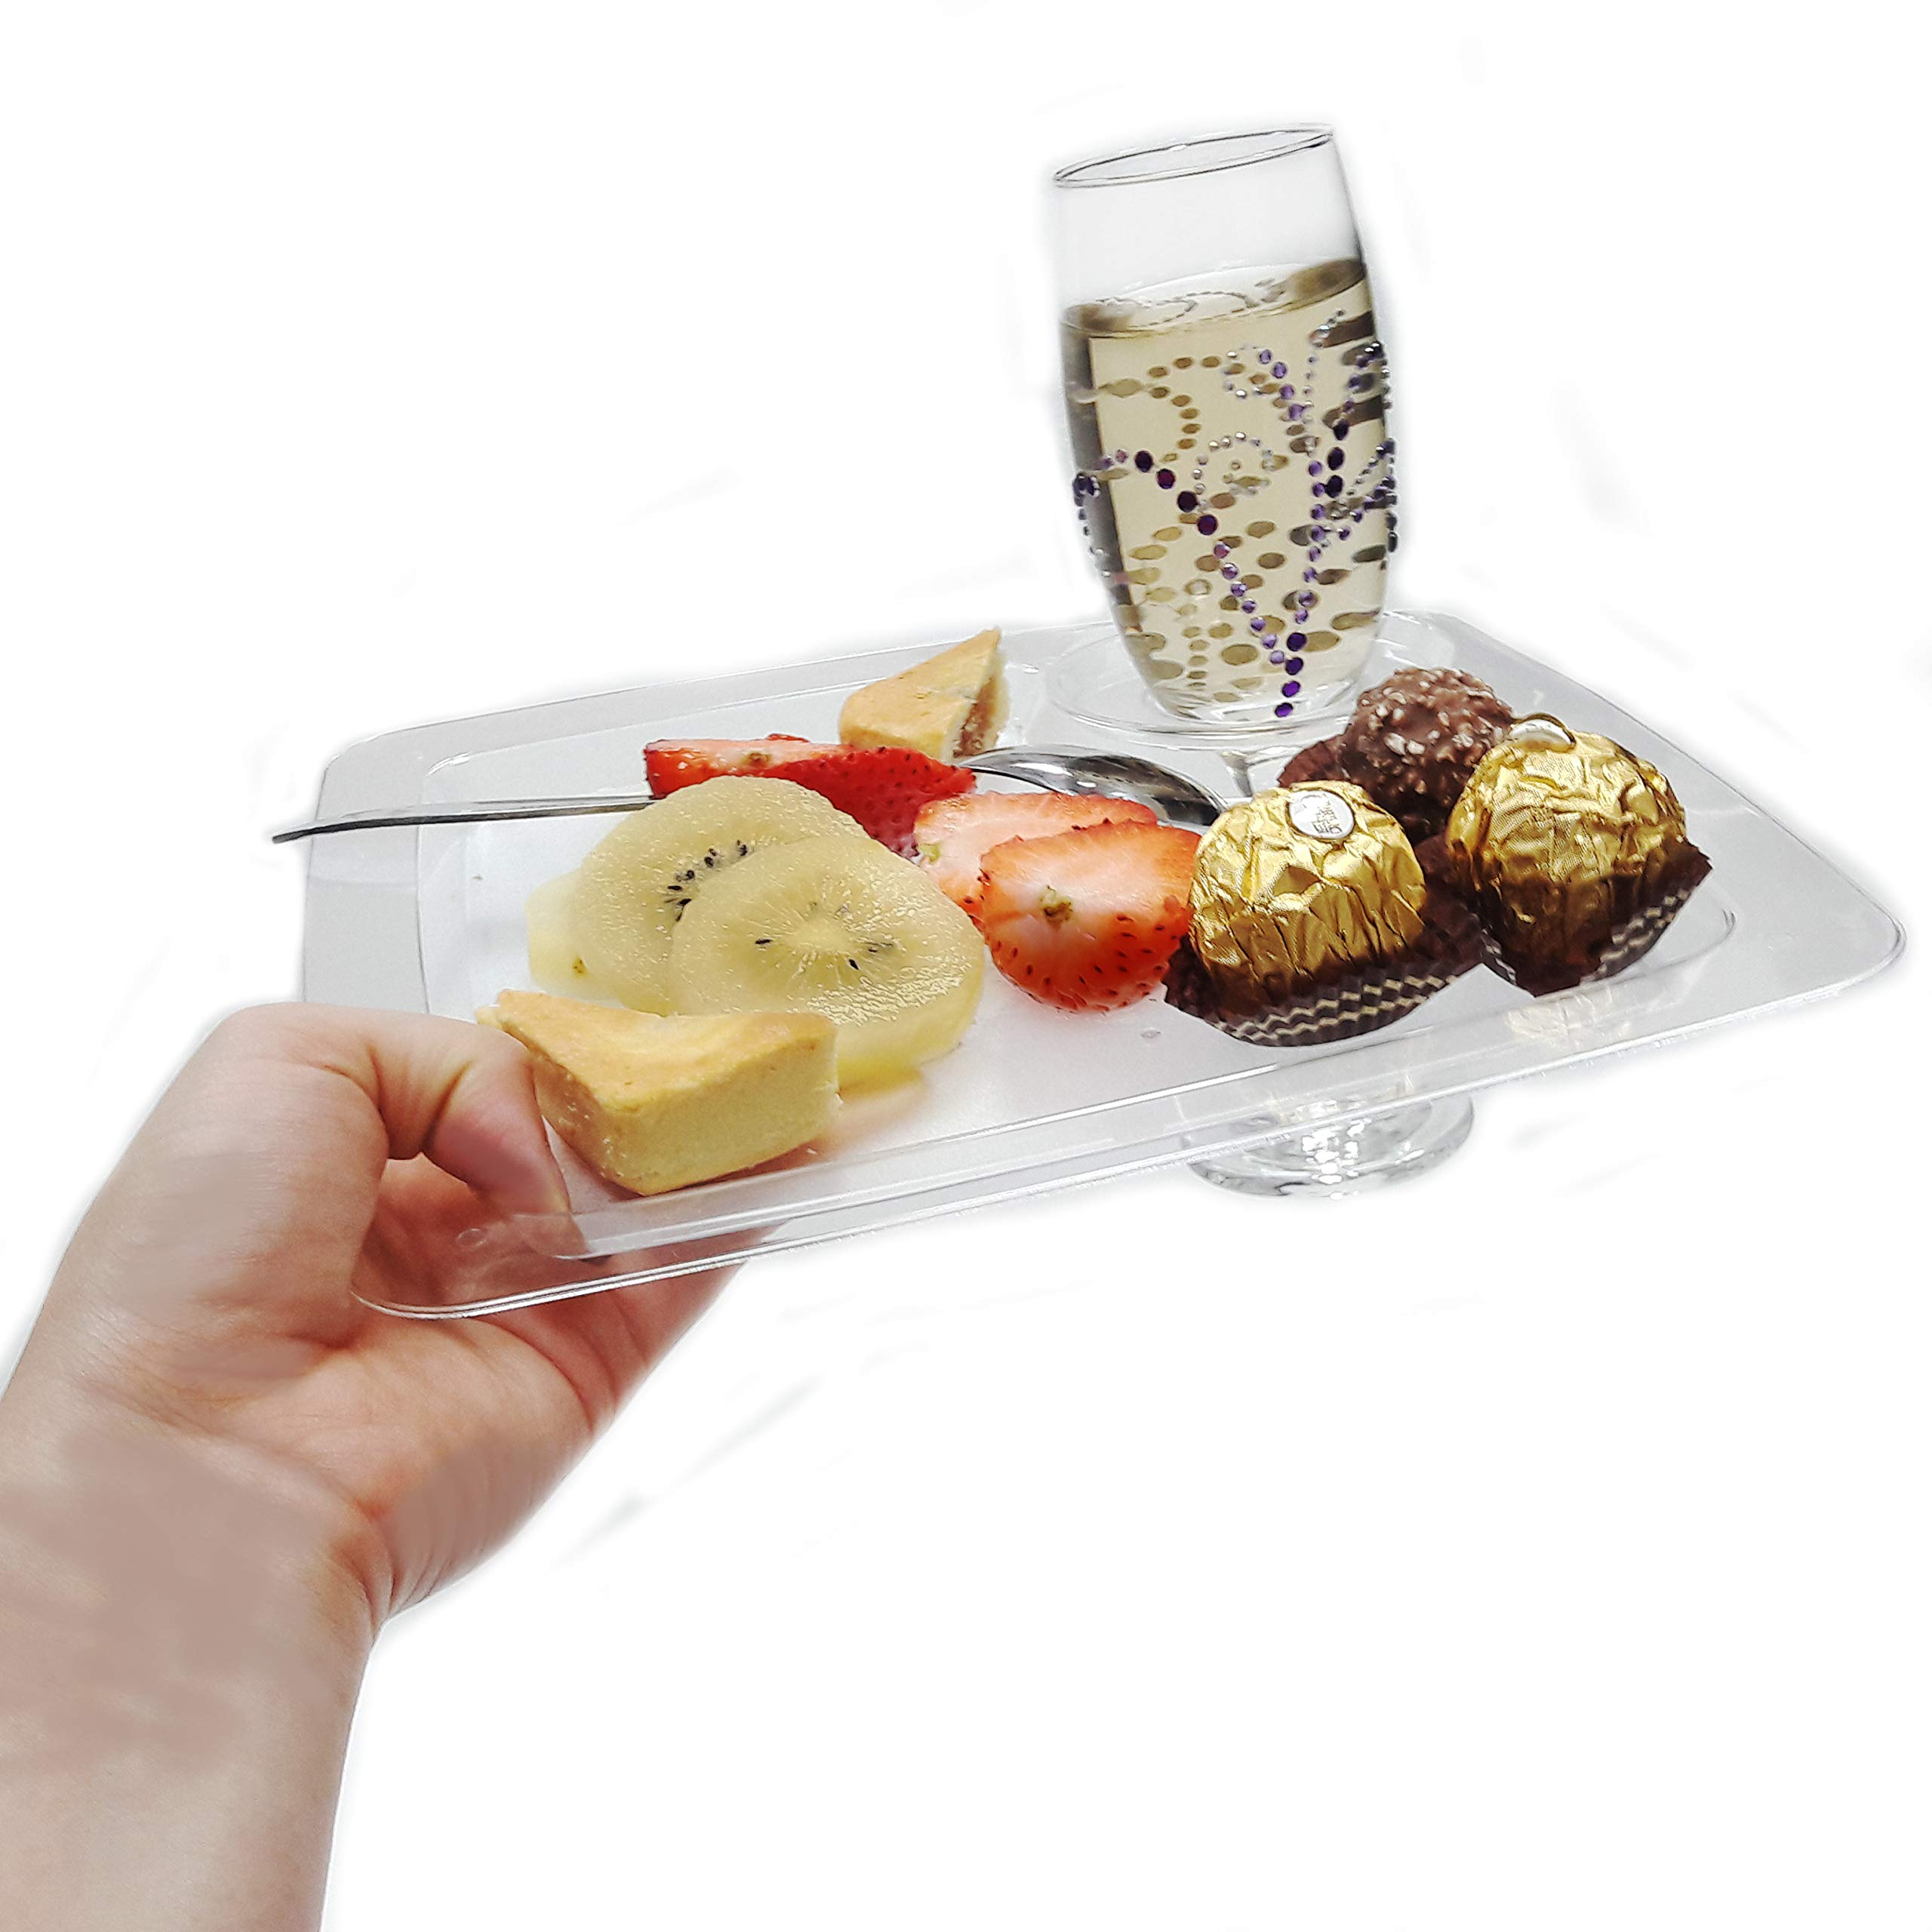 JCHB 9'' 48pc Clear Stemware Glass Holder Plates for Cocktail, Wine Tasting, Dinner, Appetizer, Dessert, Food Buffet, Washable Party Plates